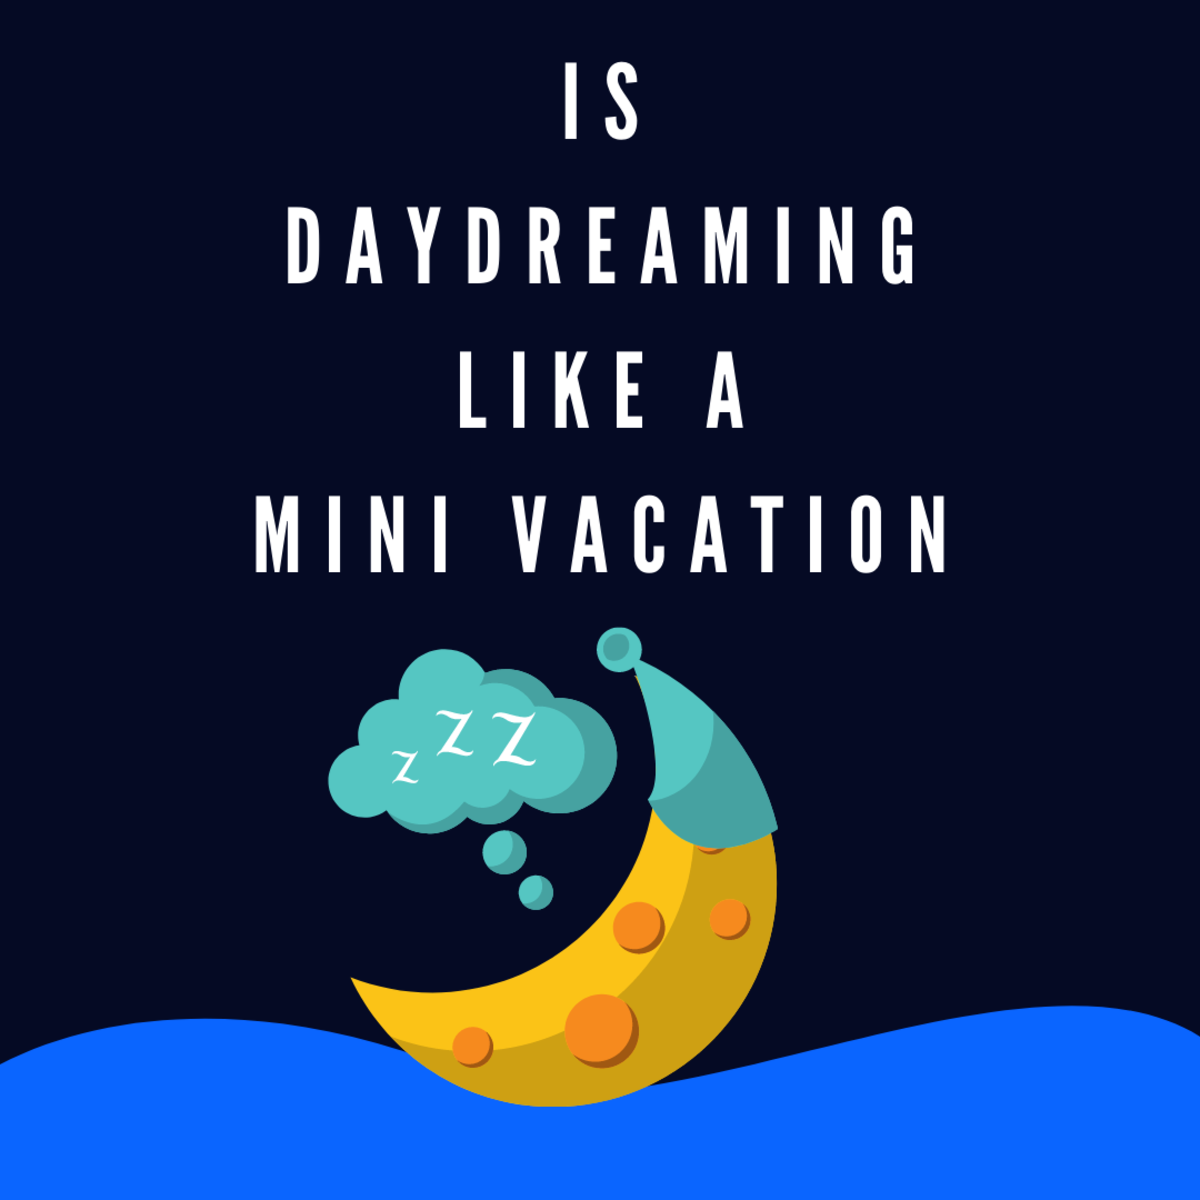 A beginner-friendly guide to daydreaming